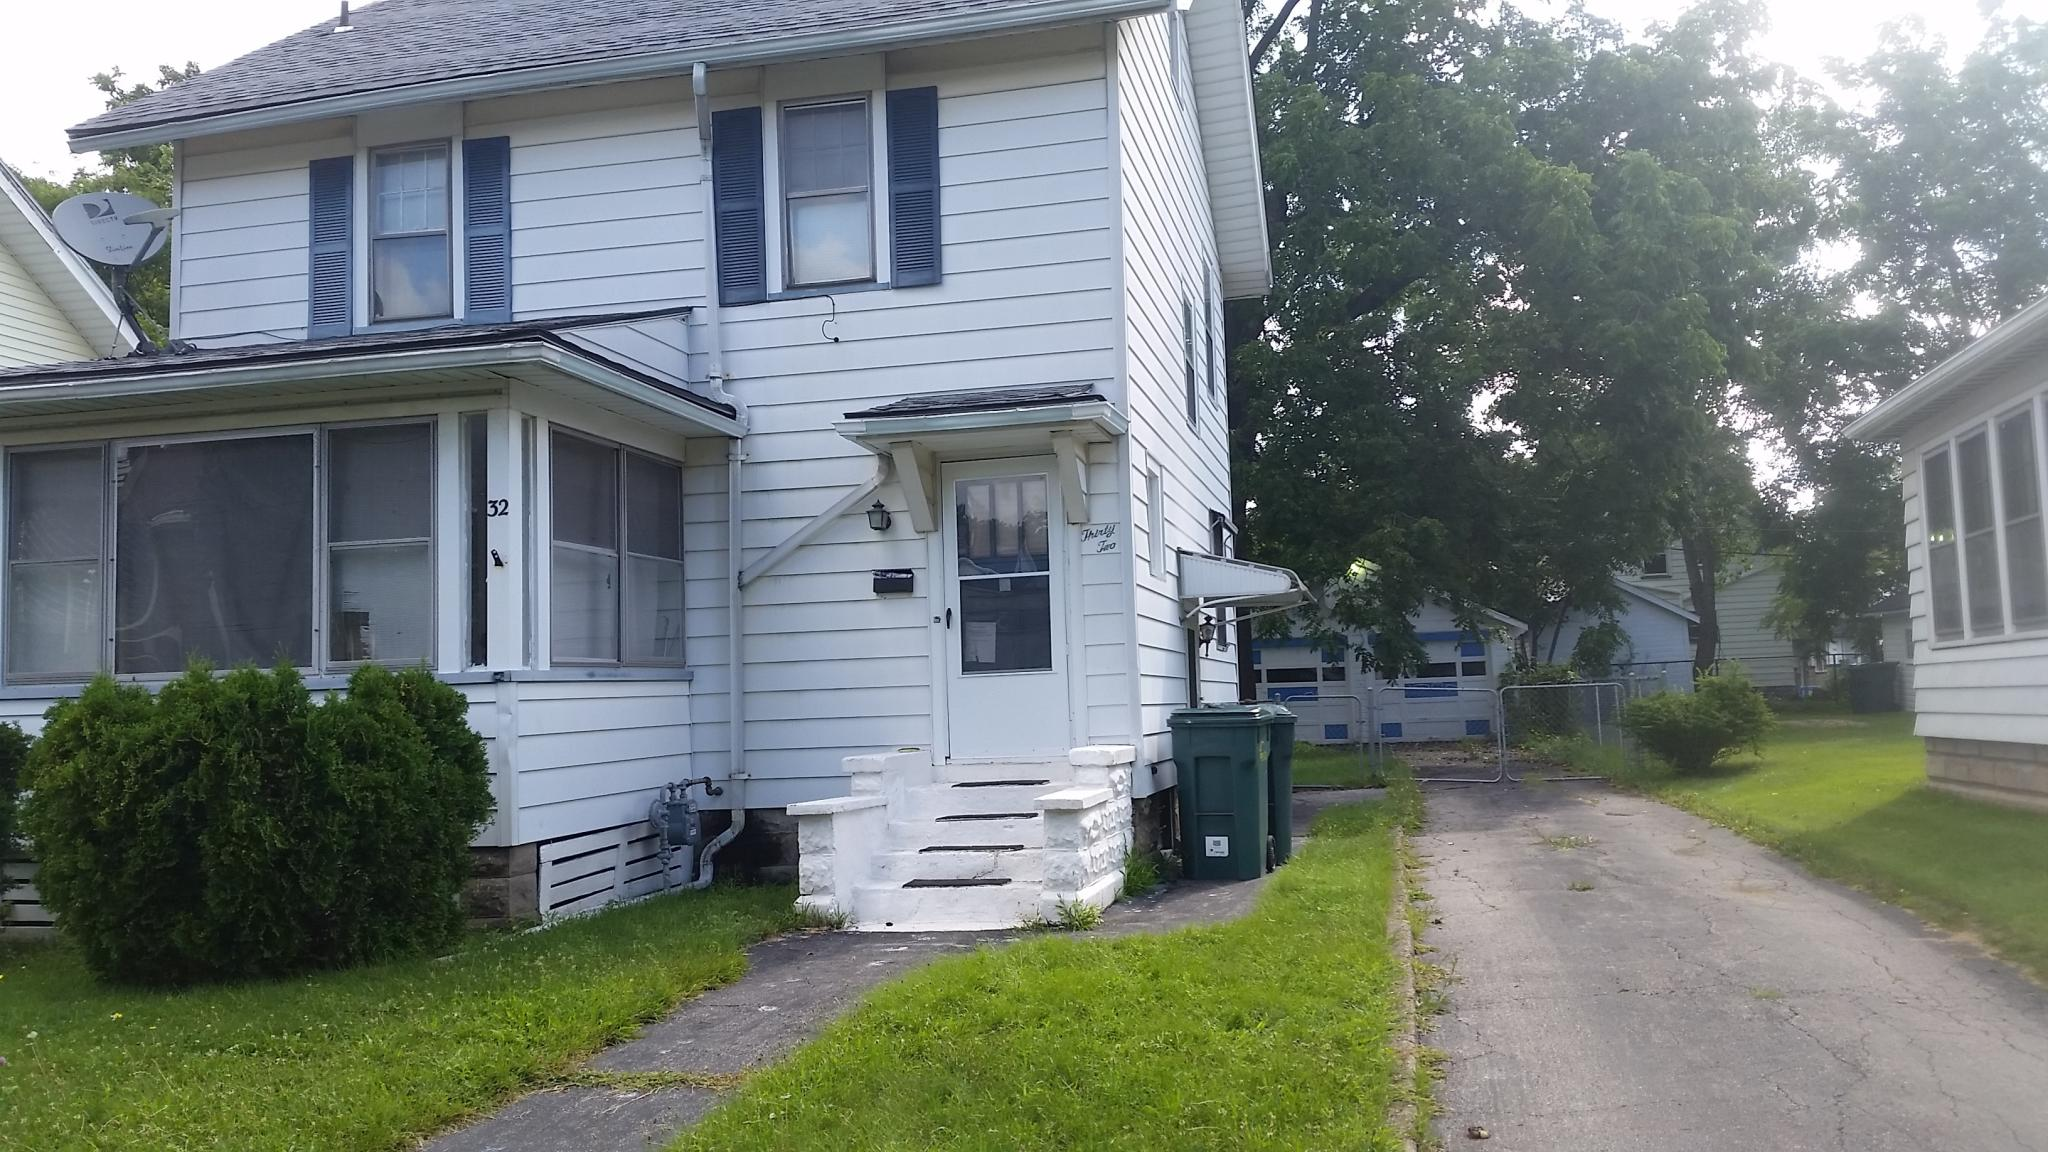 32 Turner St Rochester Ny 14619 3 Bed 1 Bath Single Family Home